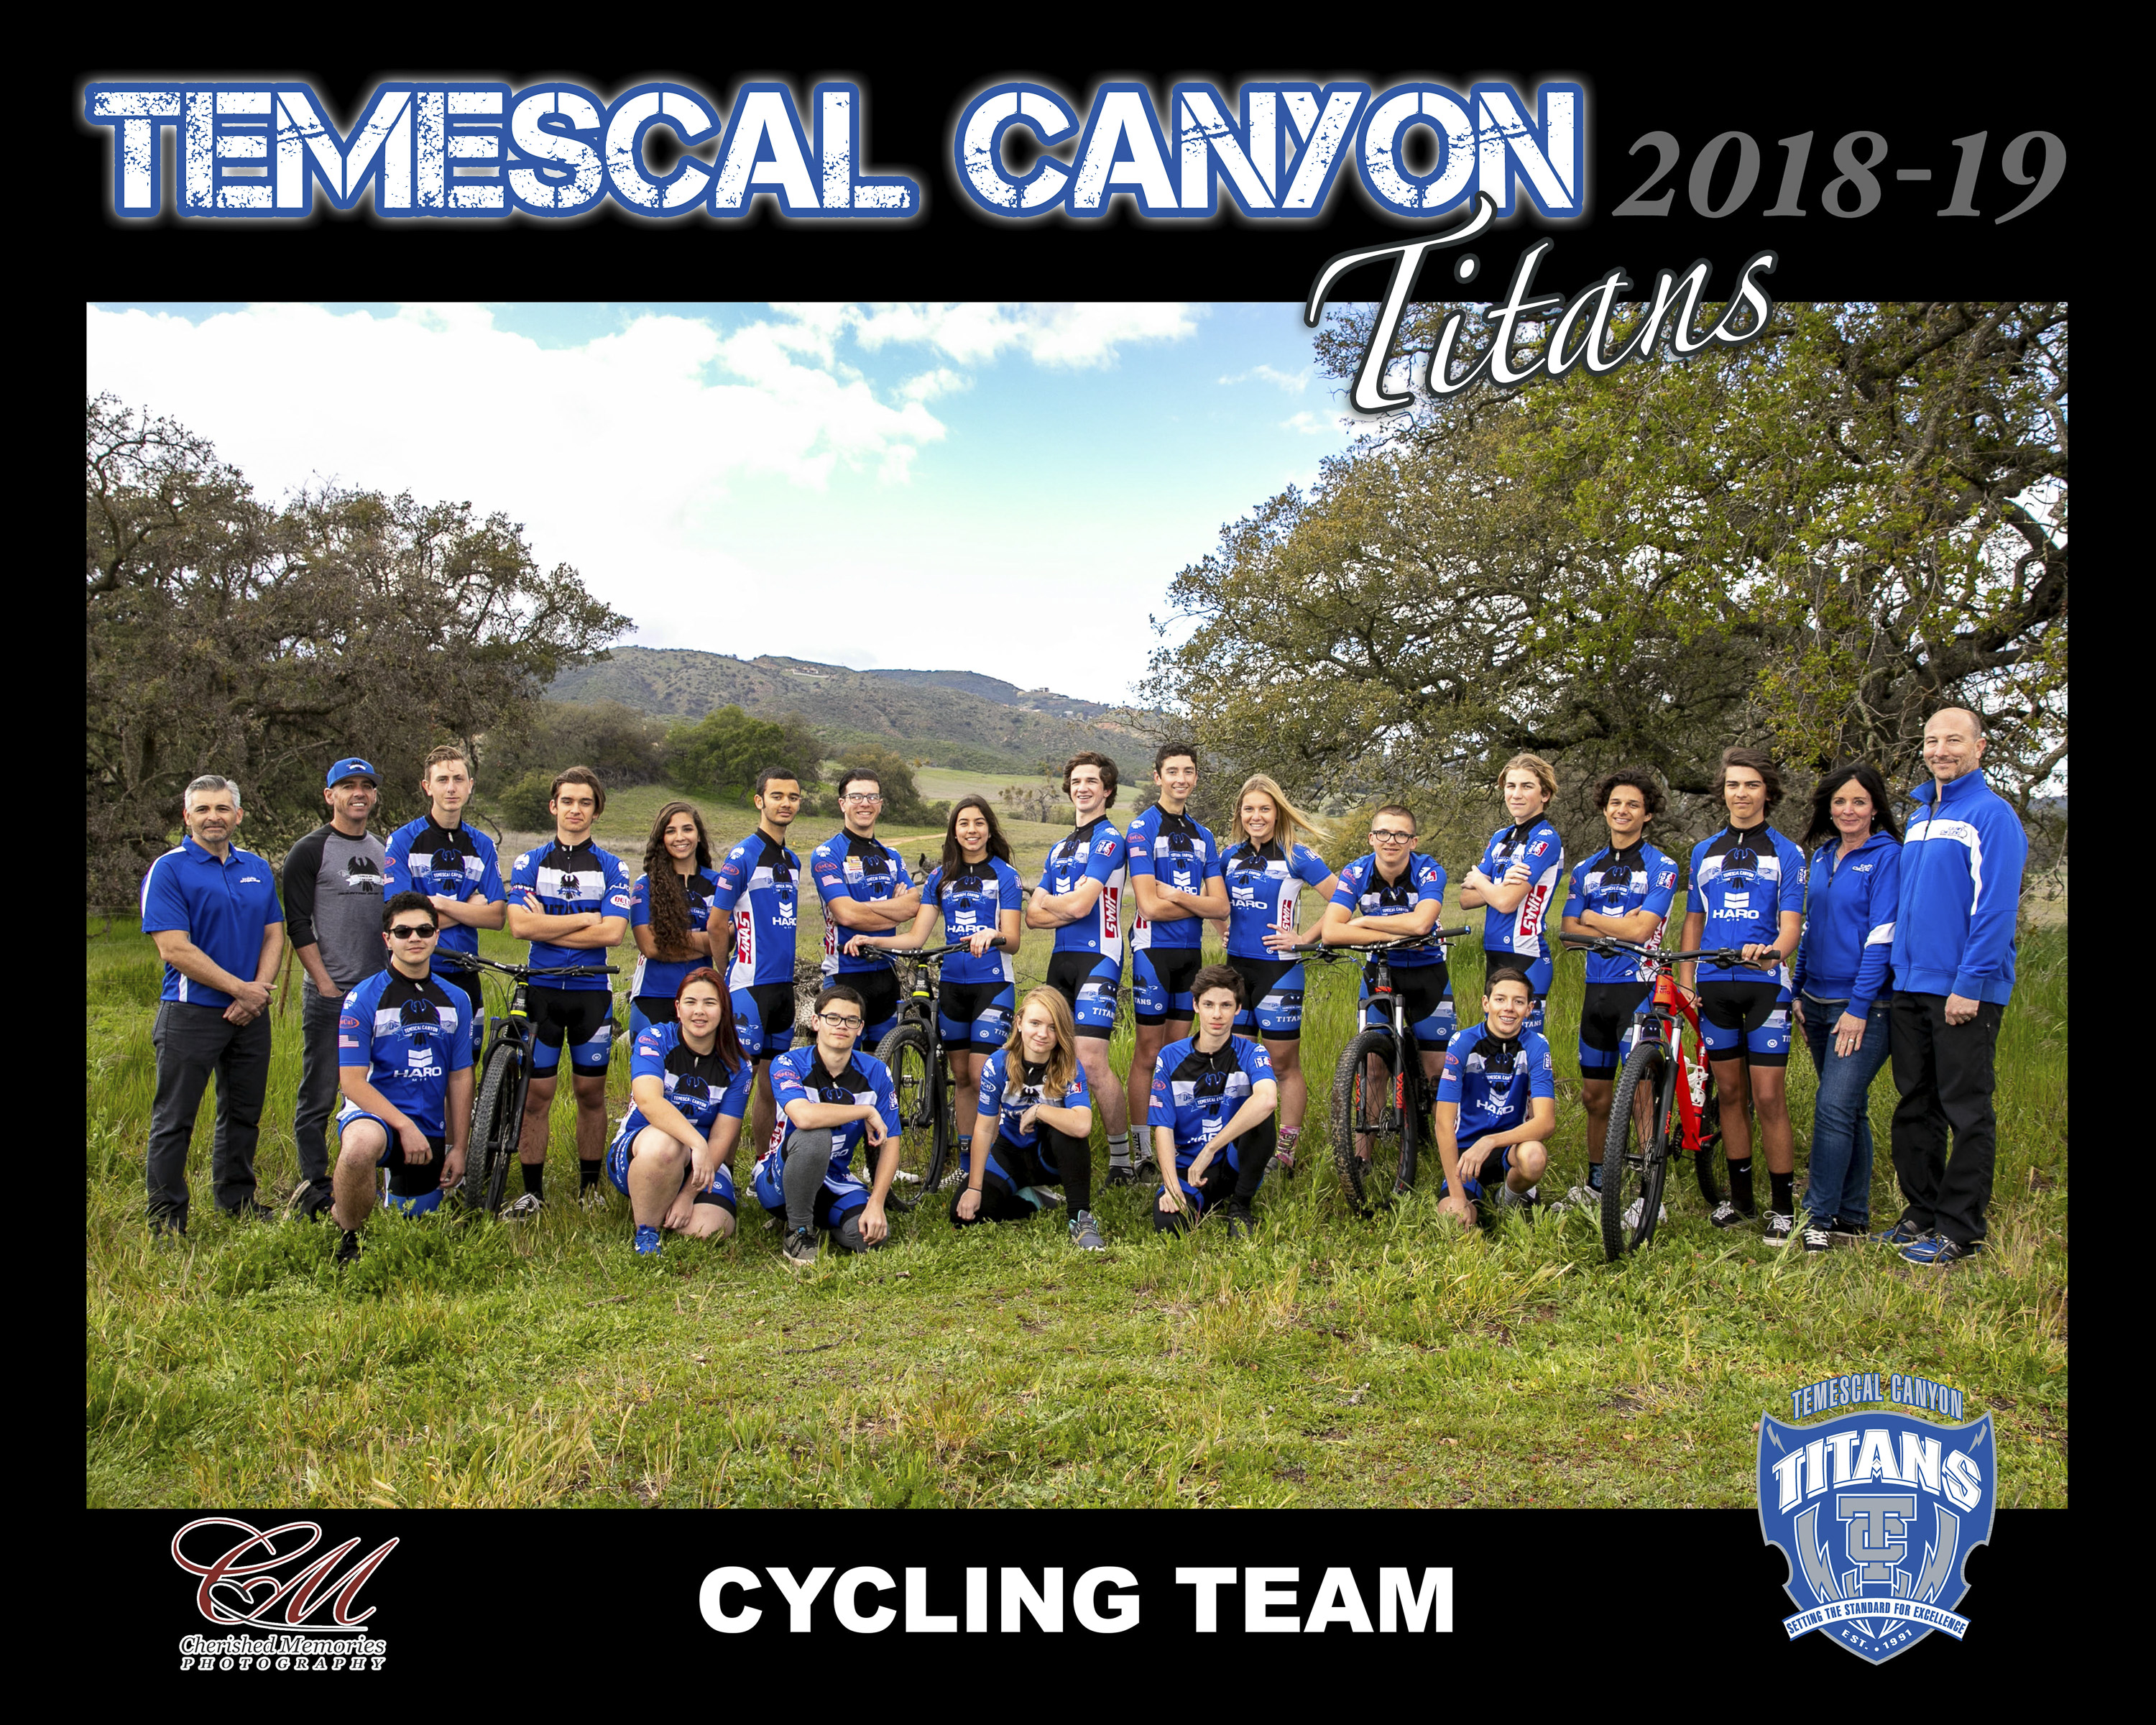 16x20 Cycling team